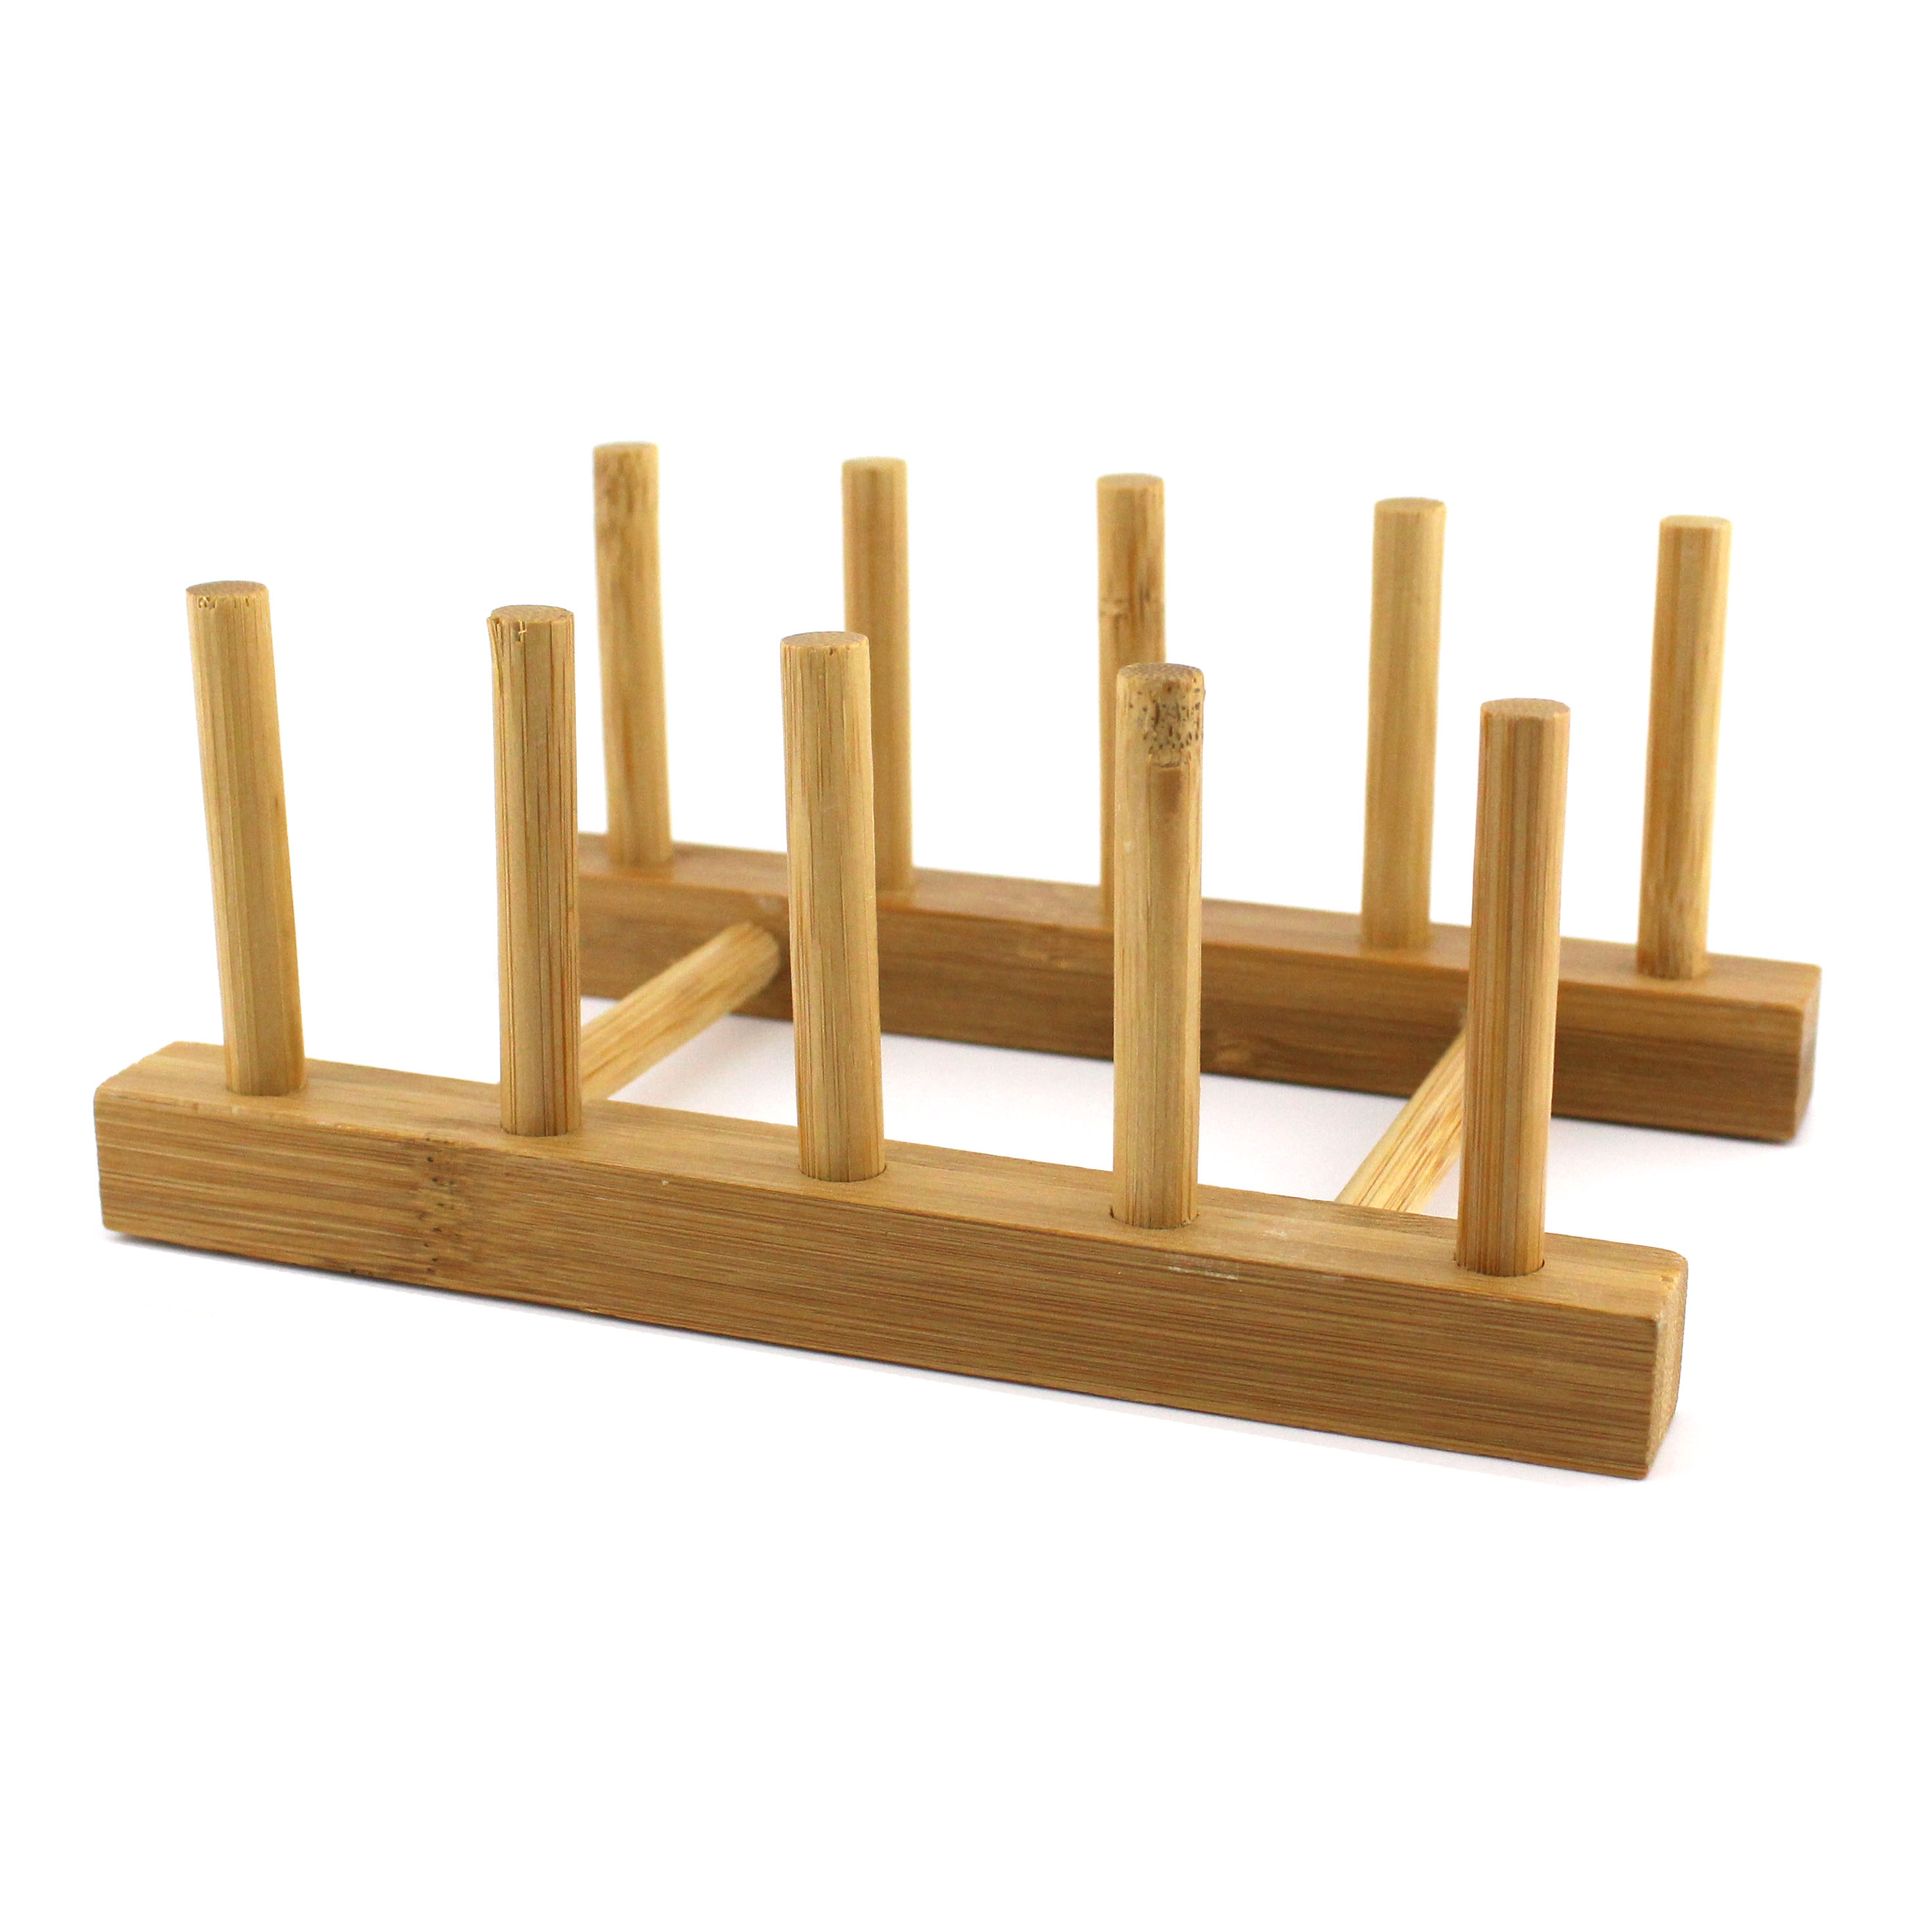 Homex Bamboo Plate Holder Rack ...  sc 1 st  HOMEX : bamboo plate holders - pezcame.com